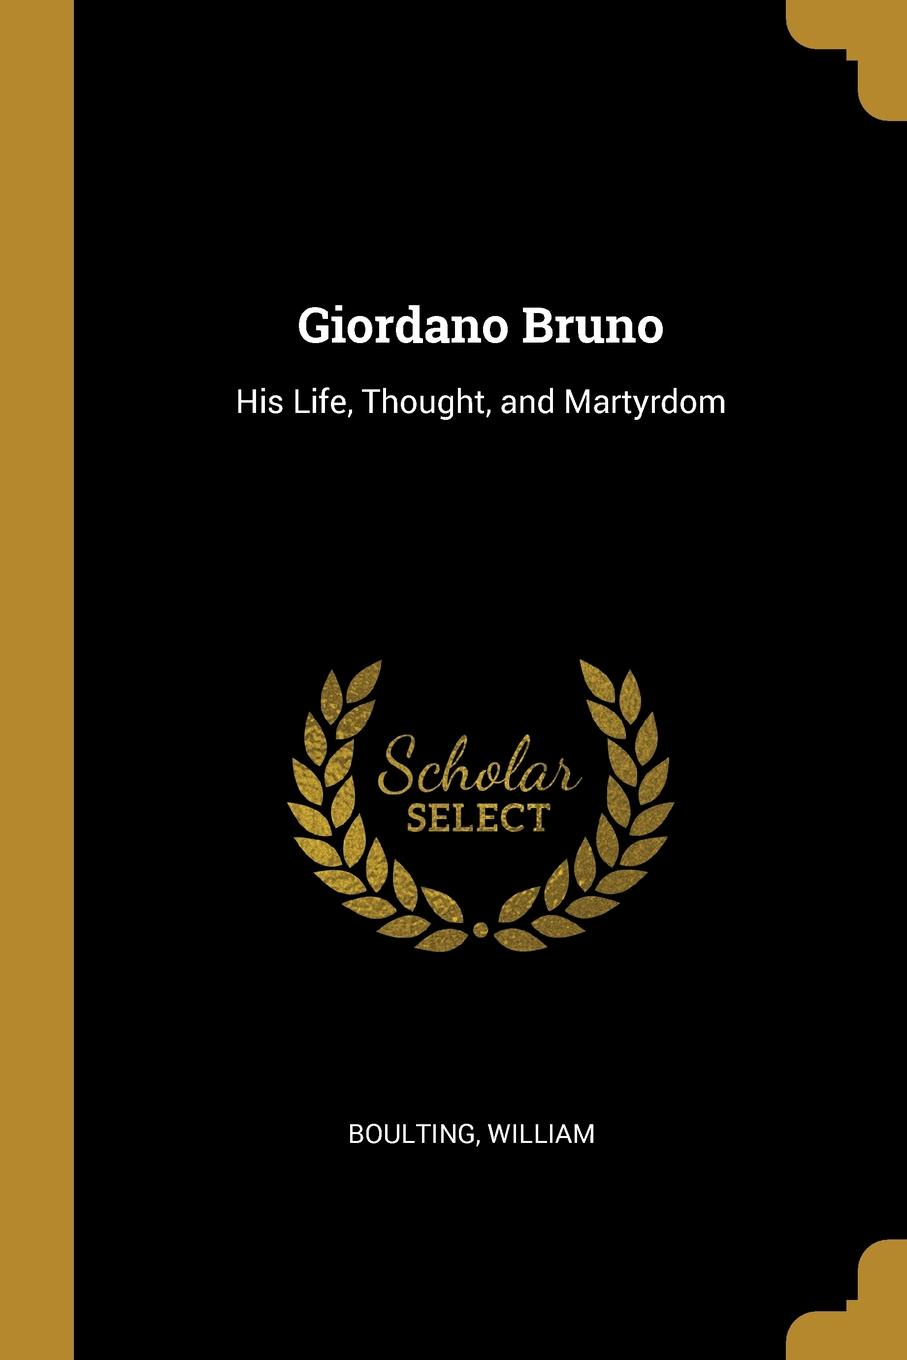 Boulting William Giordano Bruno. His Life, Thought, and Martyrdom